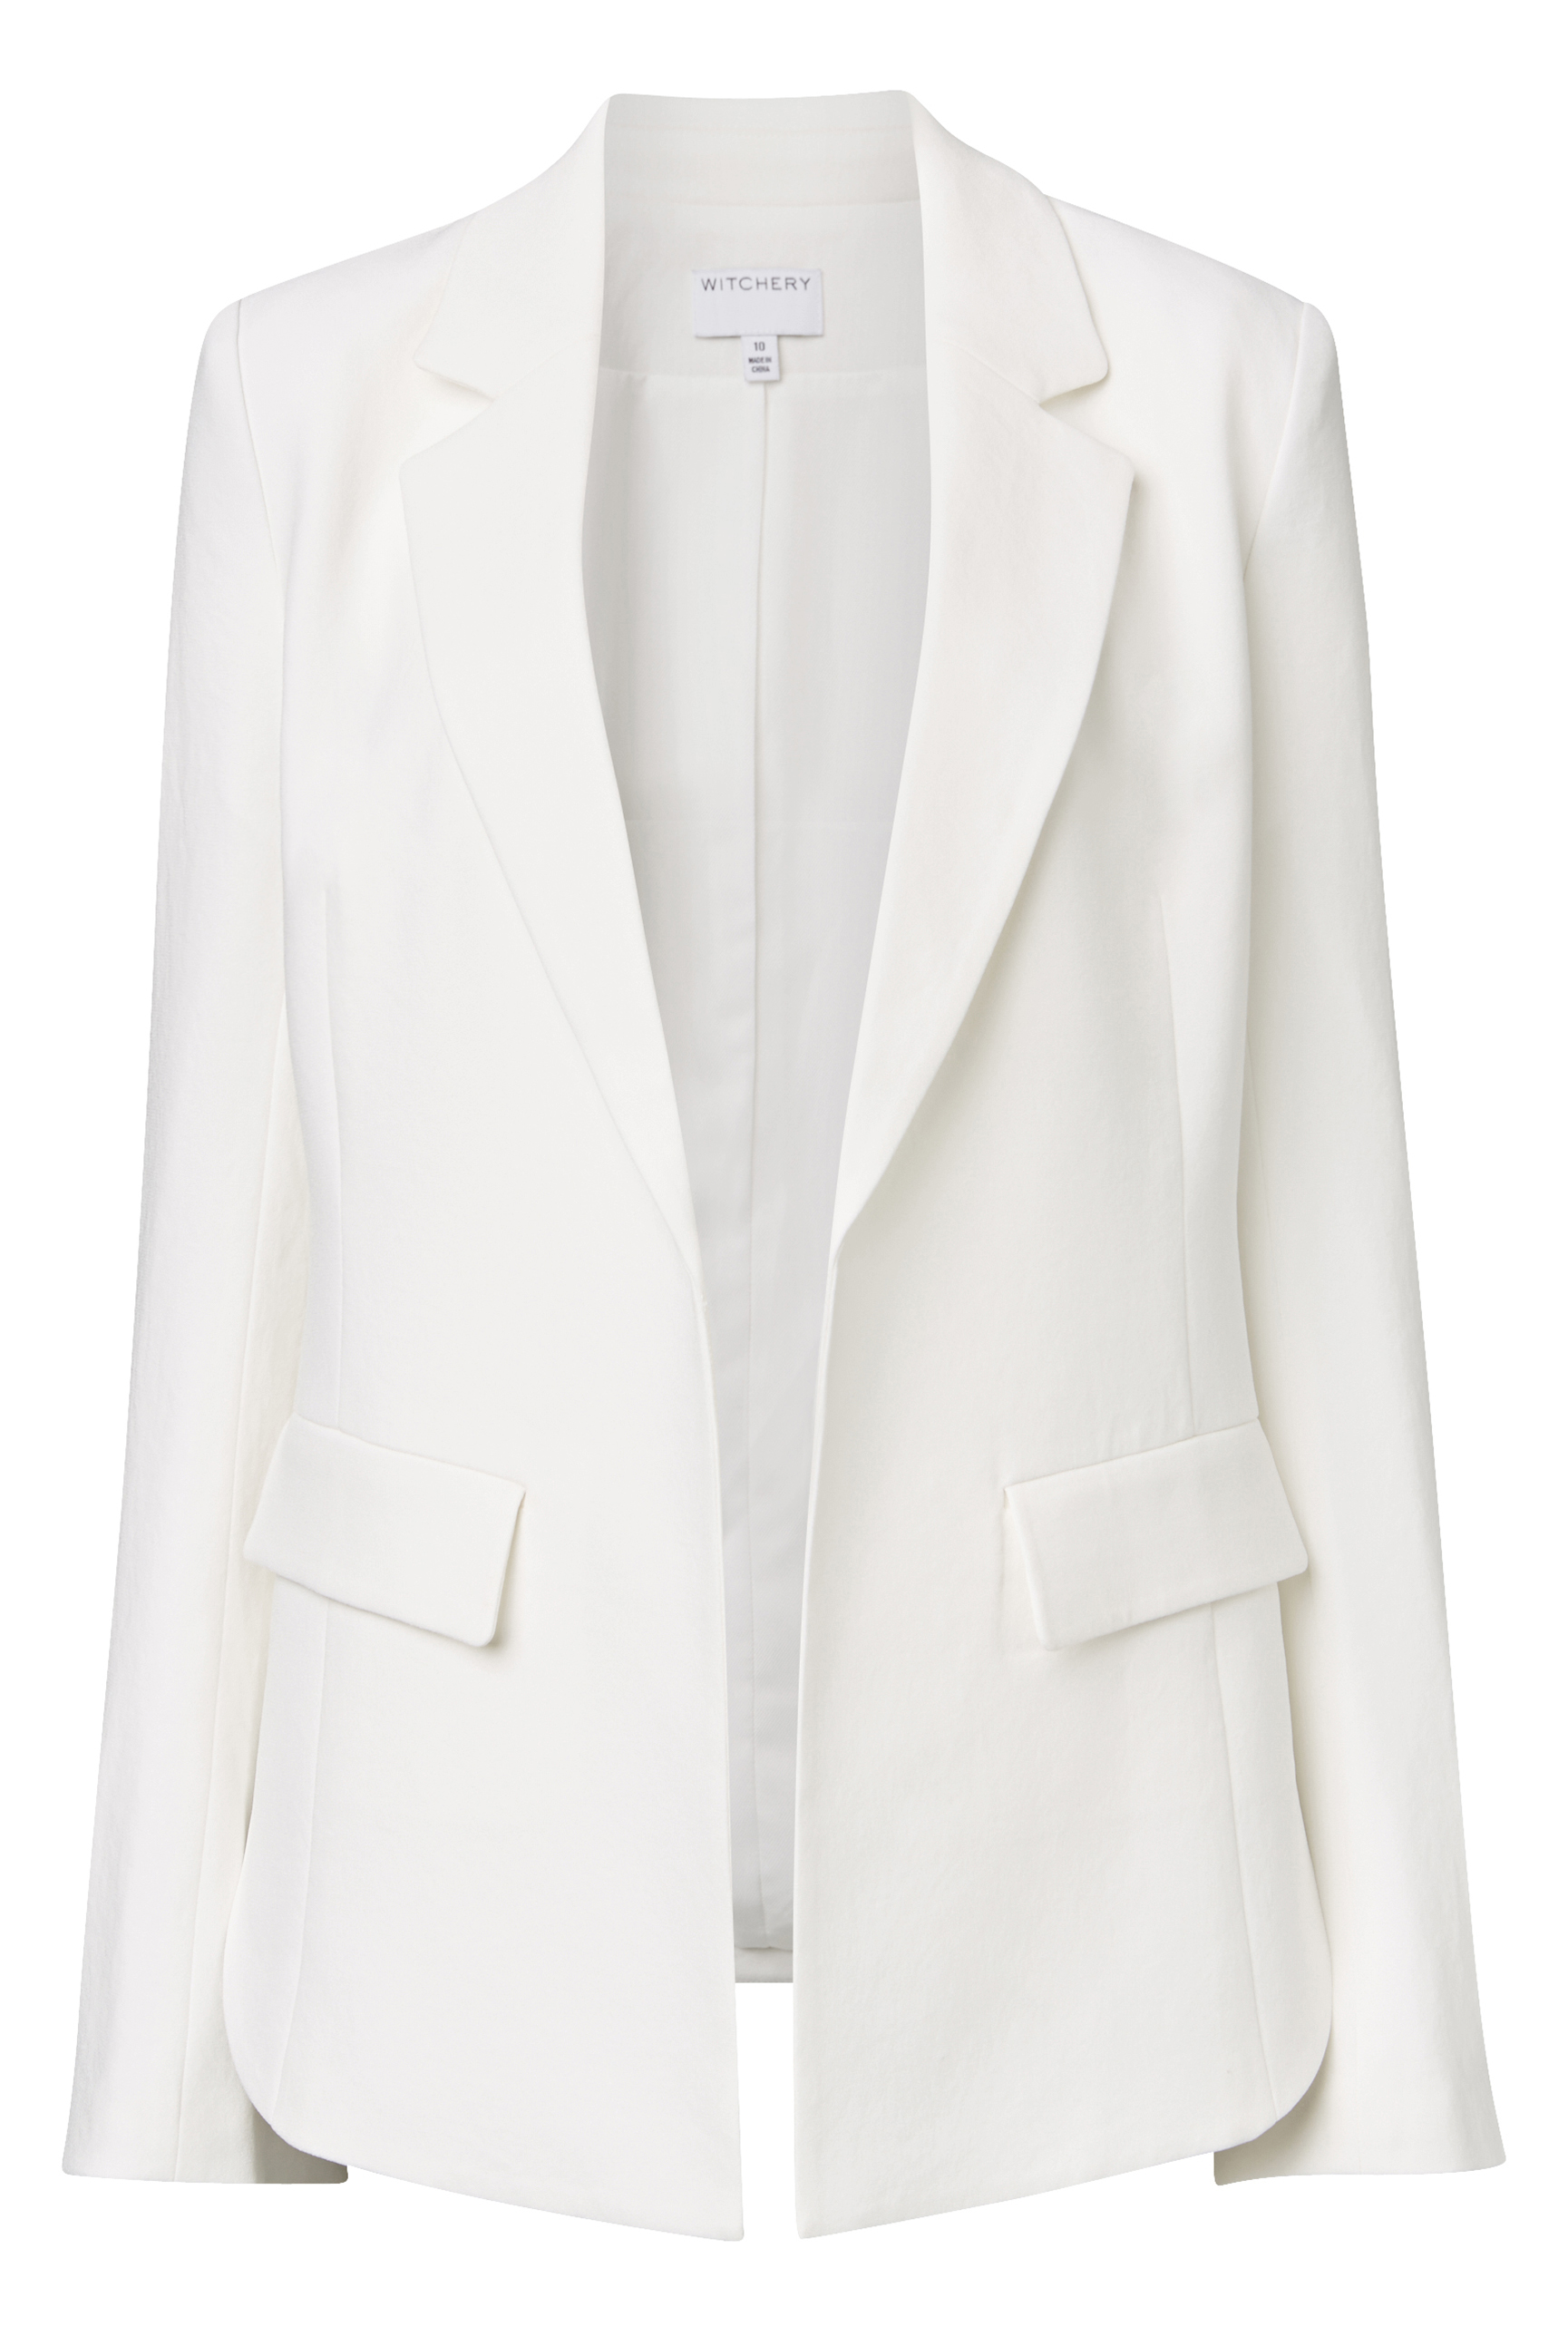 60197690_Witchery Split Sleeve Blazer, RRP $299.90